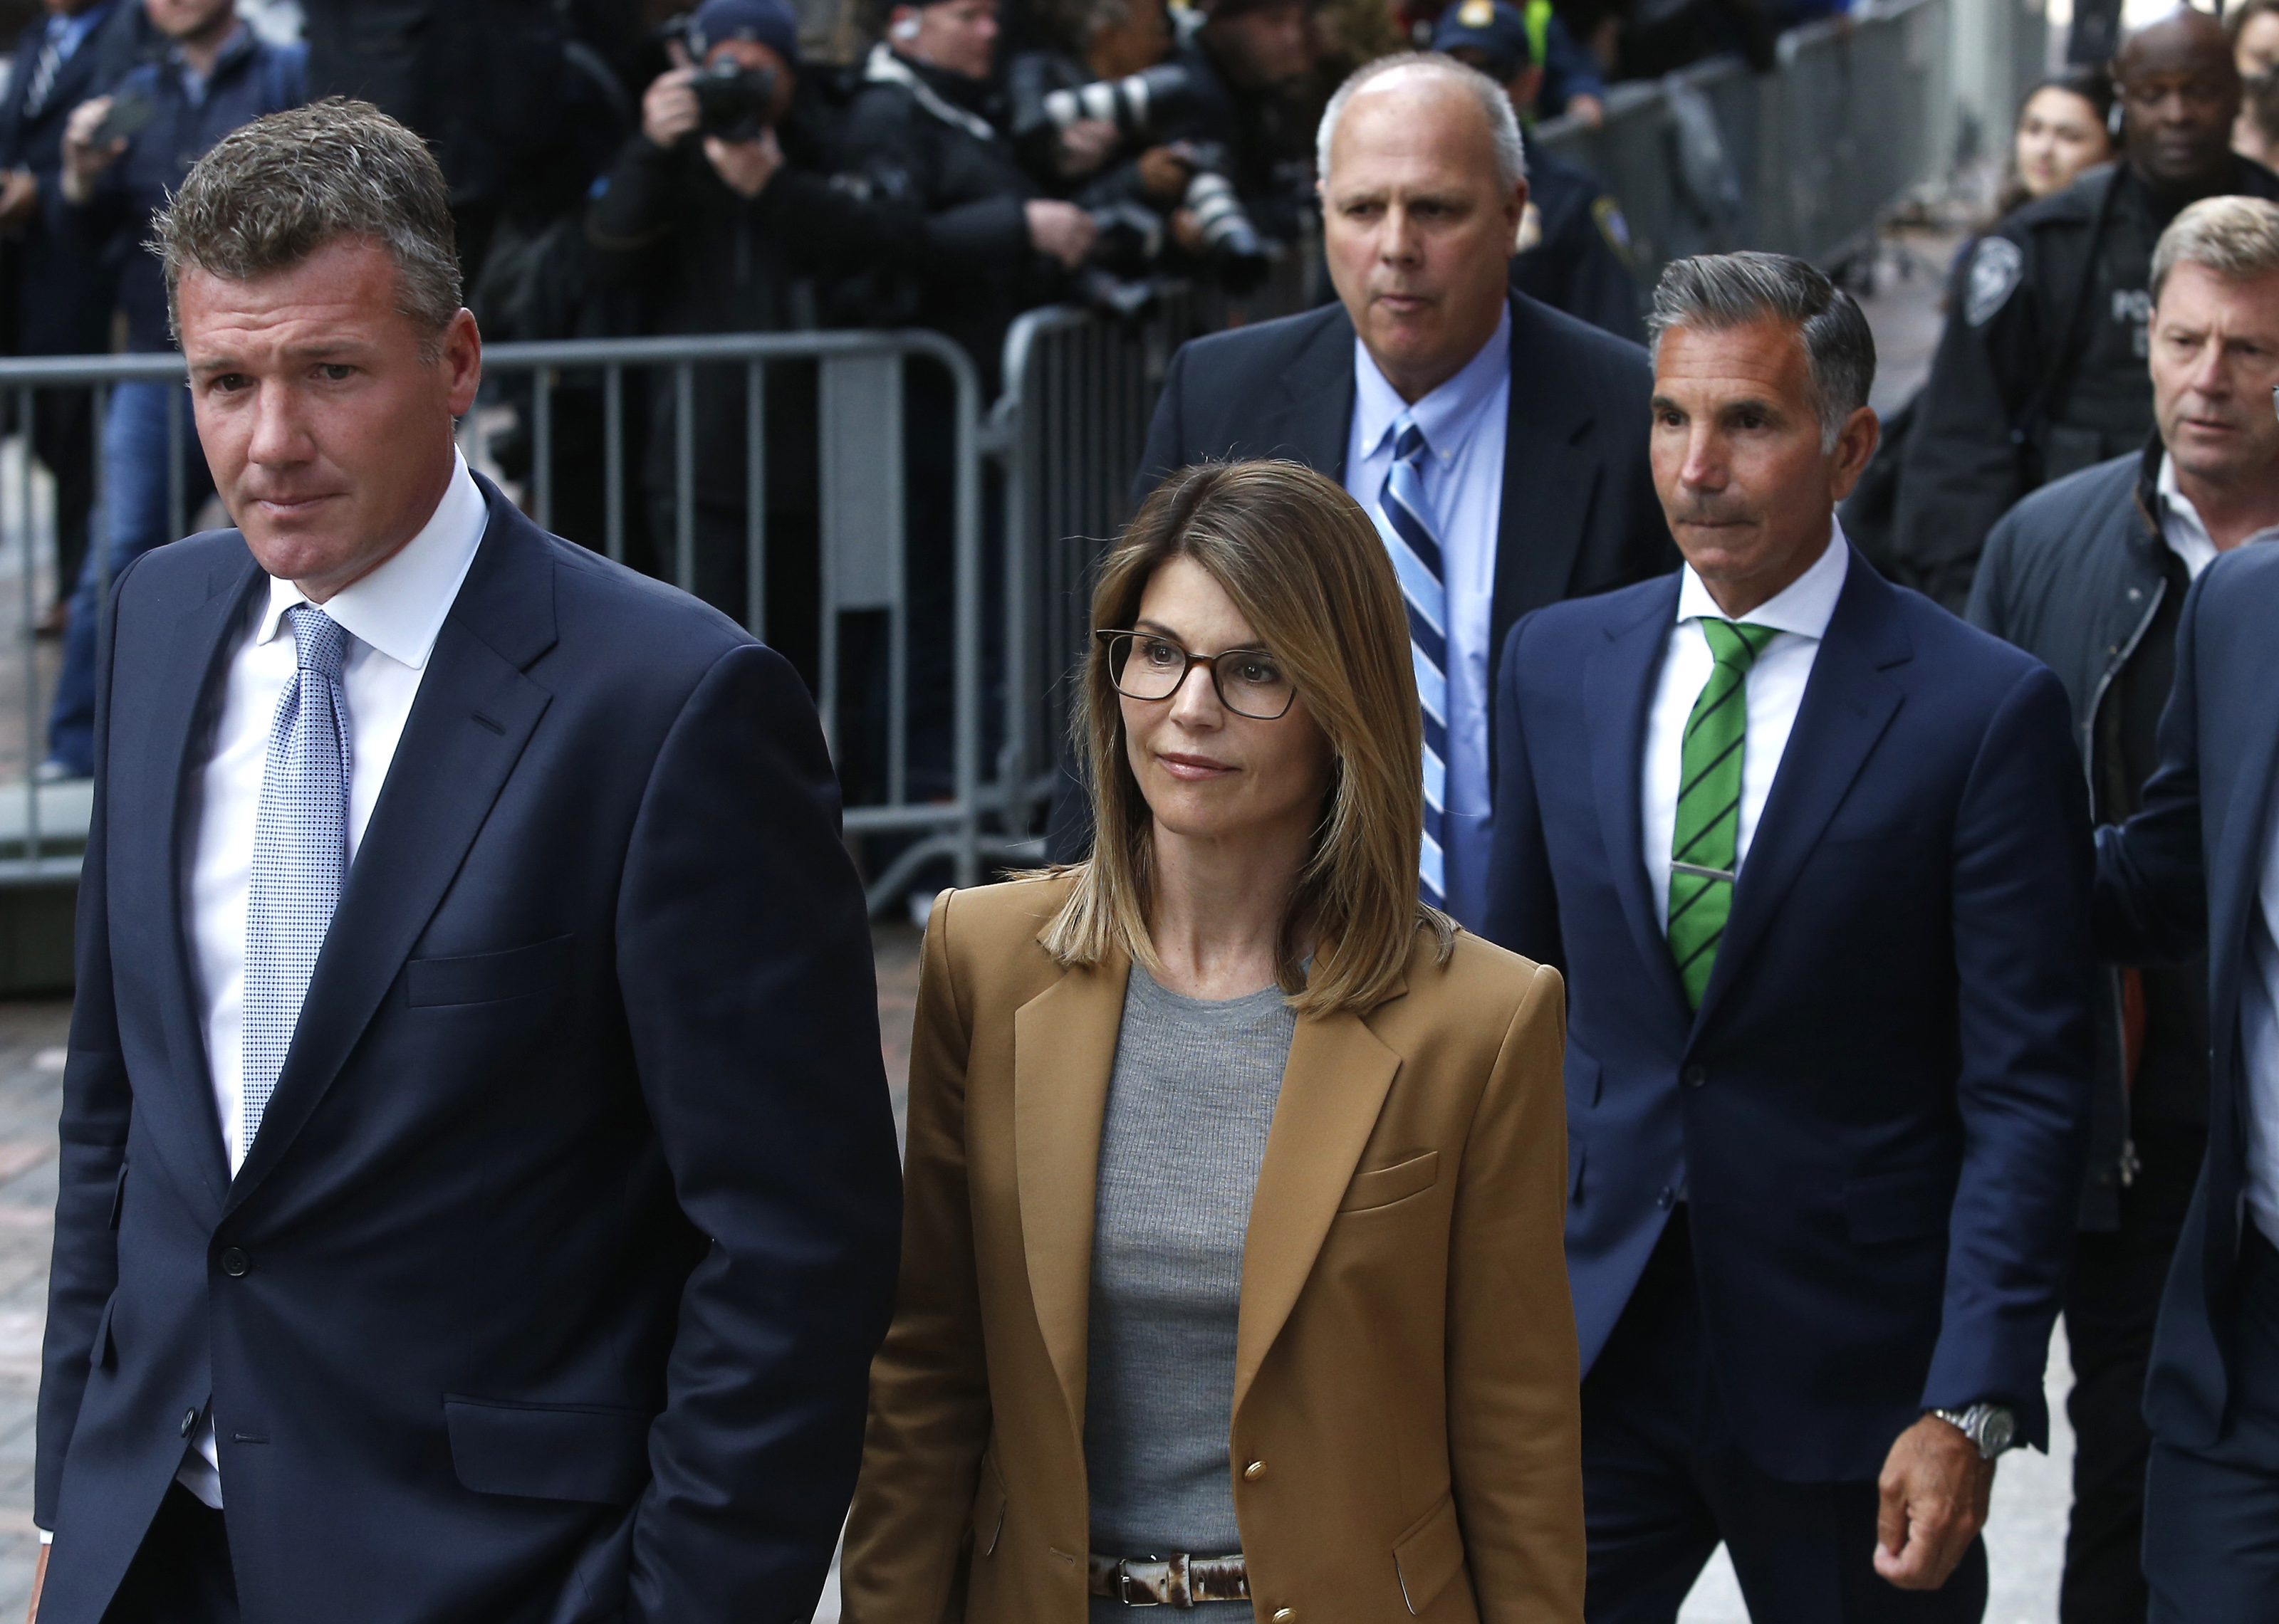 Attorneys for Lori Loughlin and husband say government 'appears to be concealing' evidence beneficial to the defense